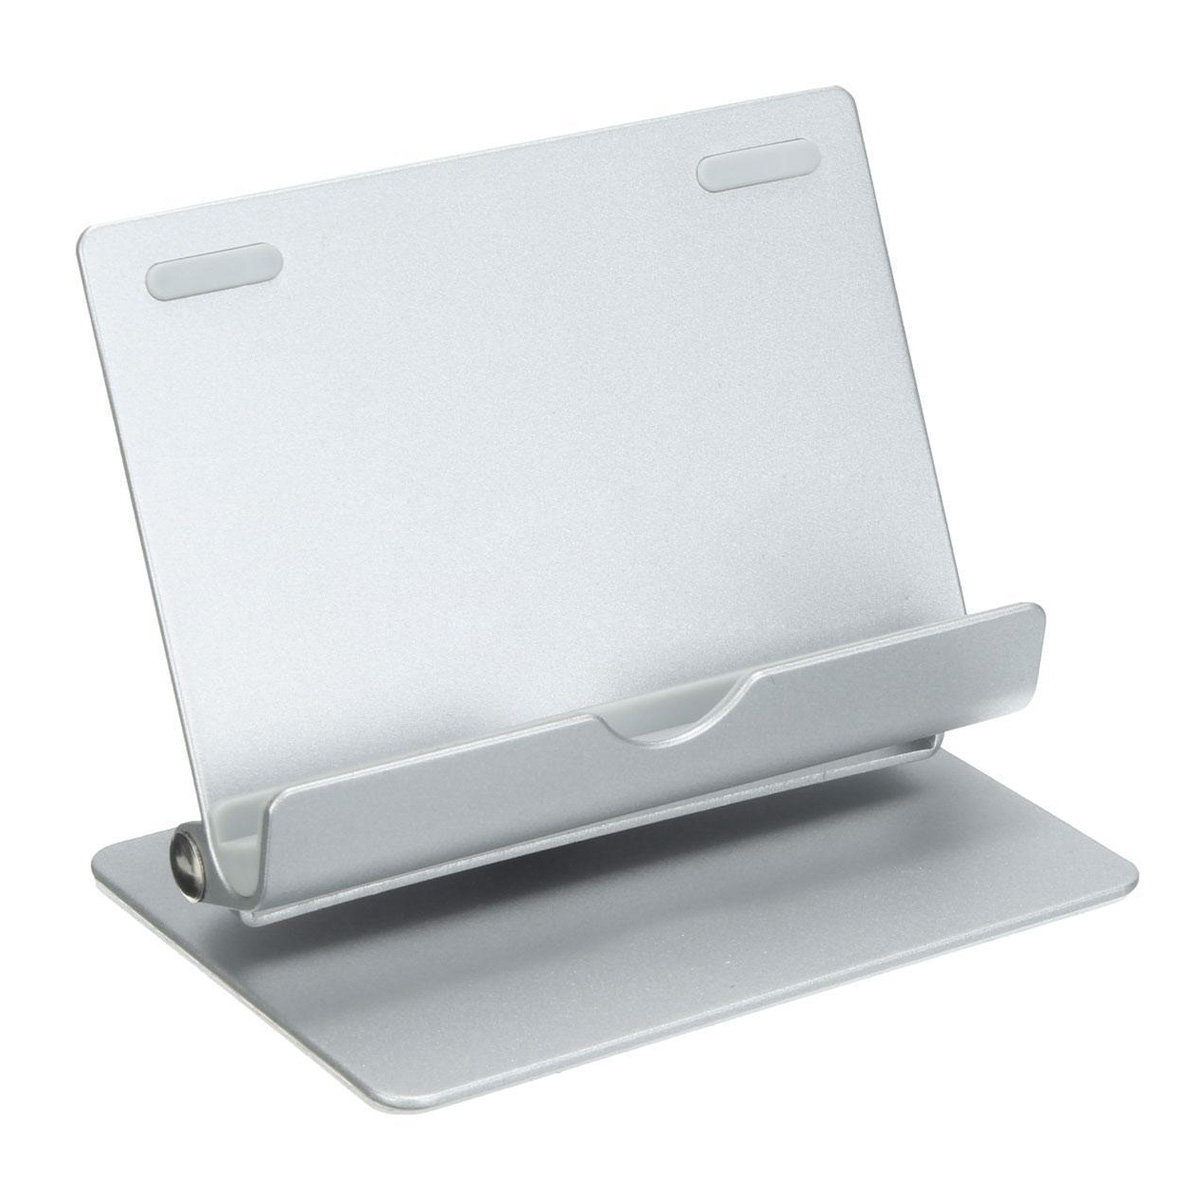 Aluminum 360 Rotating Bed Desk Mount Stand Holder For iPad 2 3 4 Air Mini Tablet цена